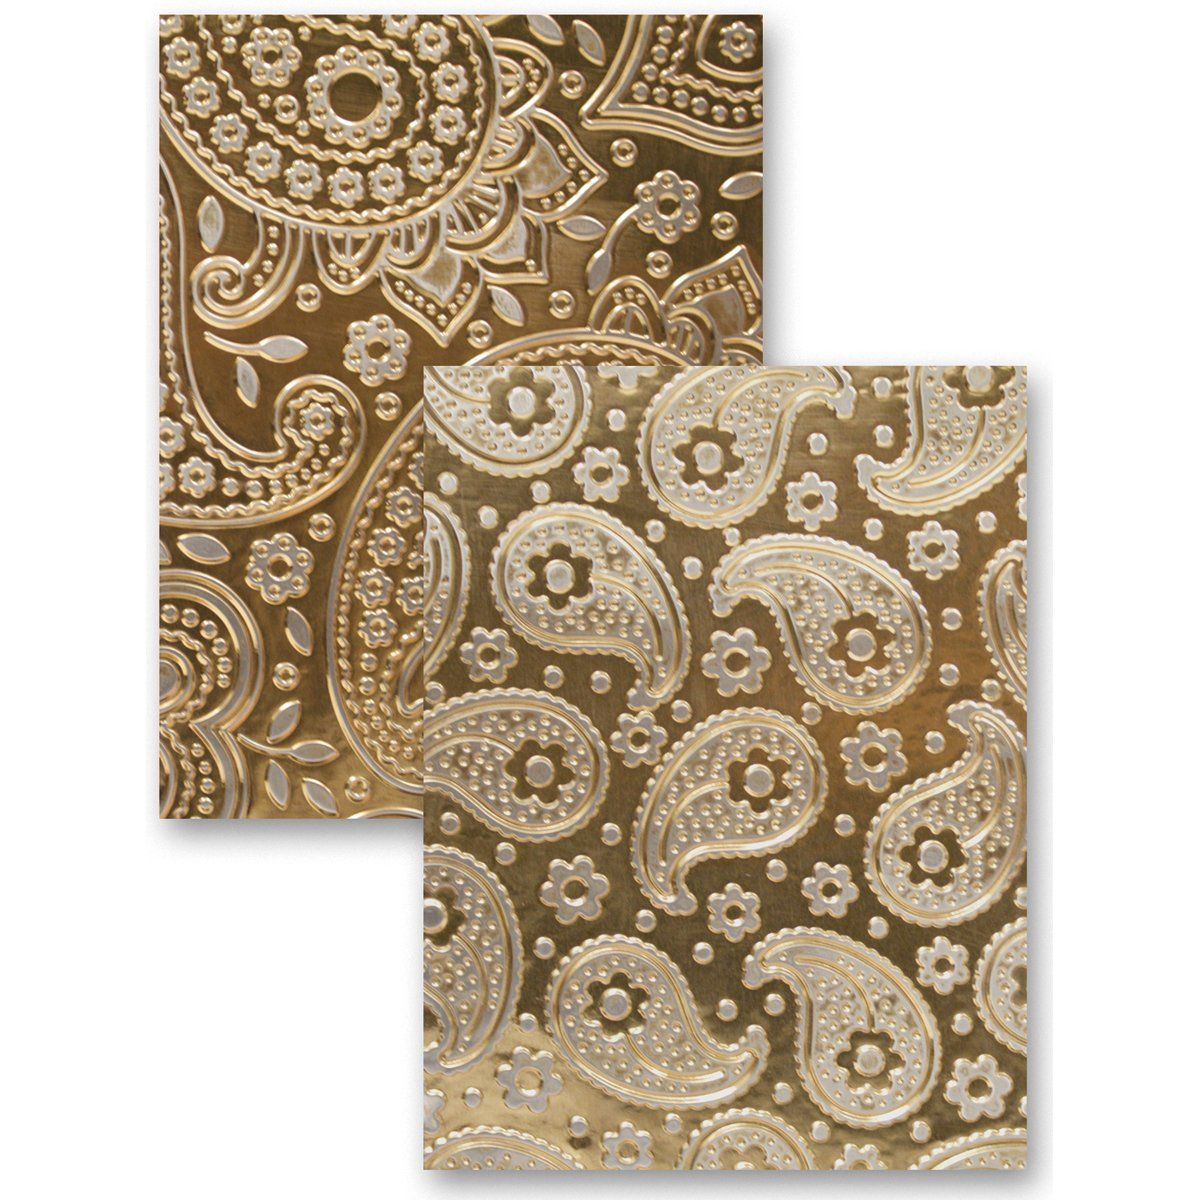 M Bossabilities Reversible A5 Embossing Folder Paisley Amazon De